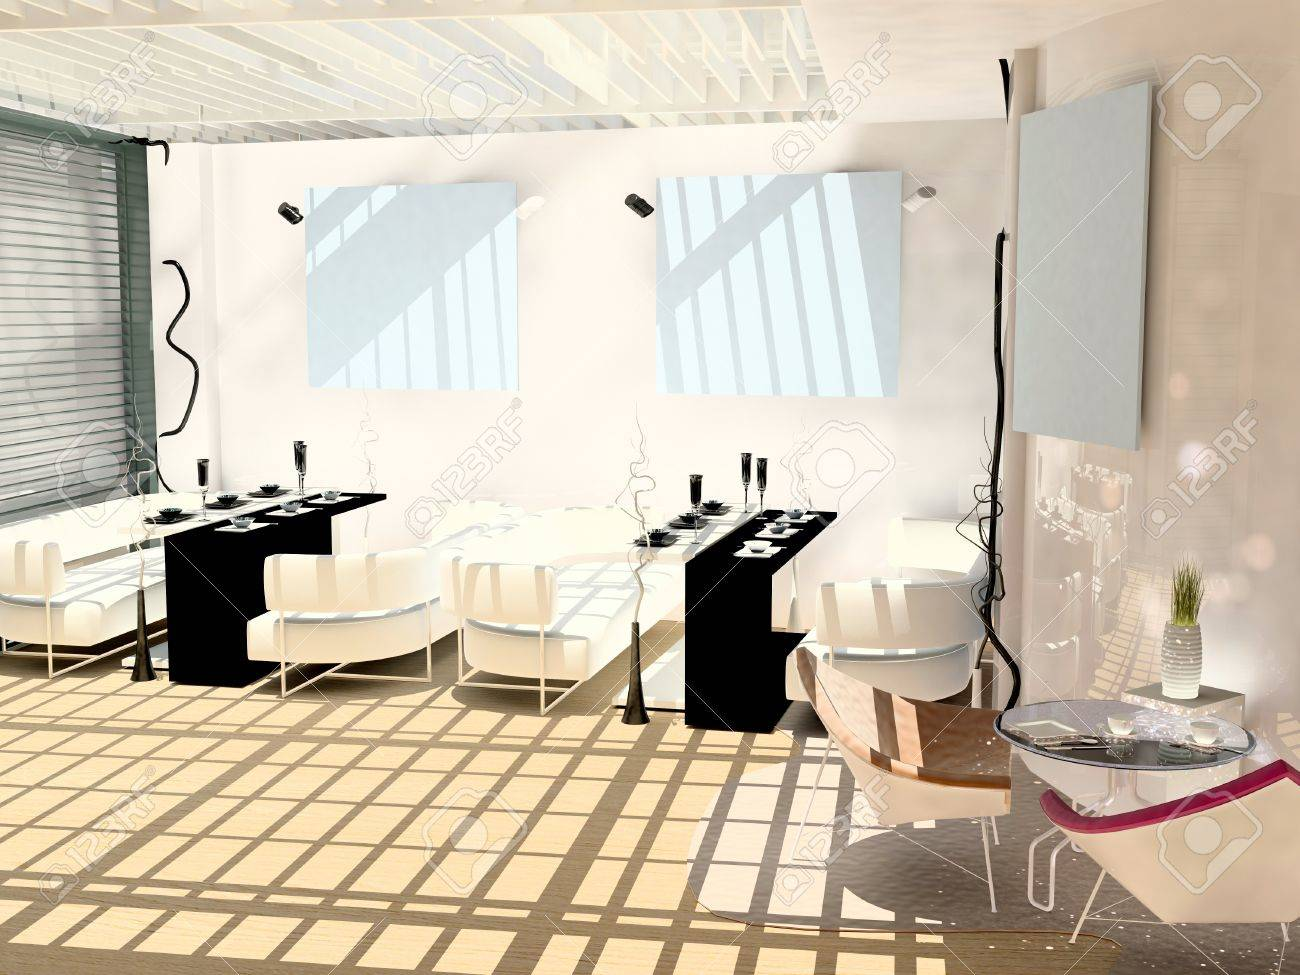 Cafe in a modern style with black and white chairs and paintings on the walls Stock Photo - 15233036